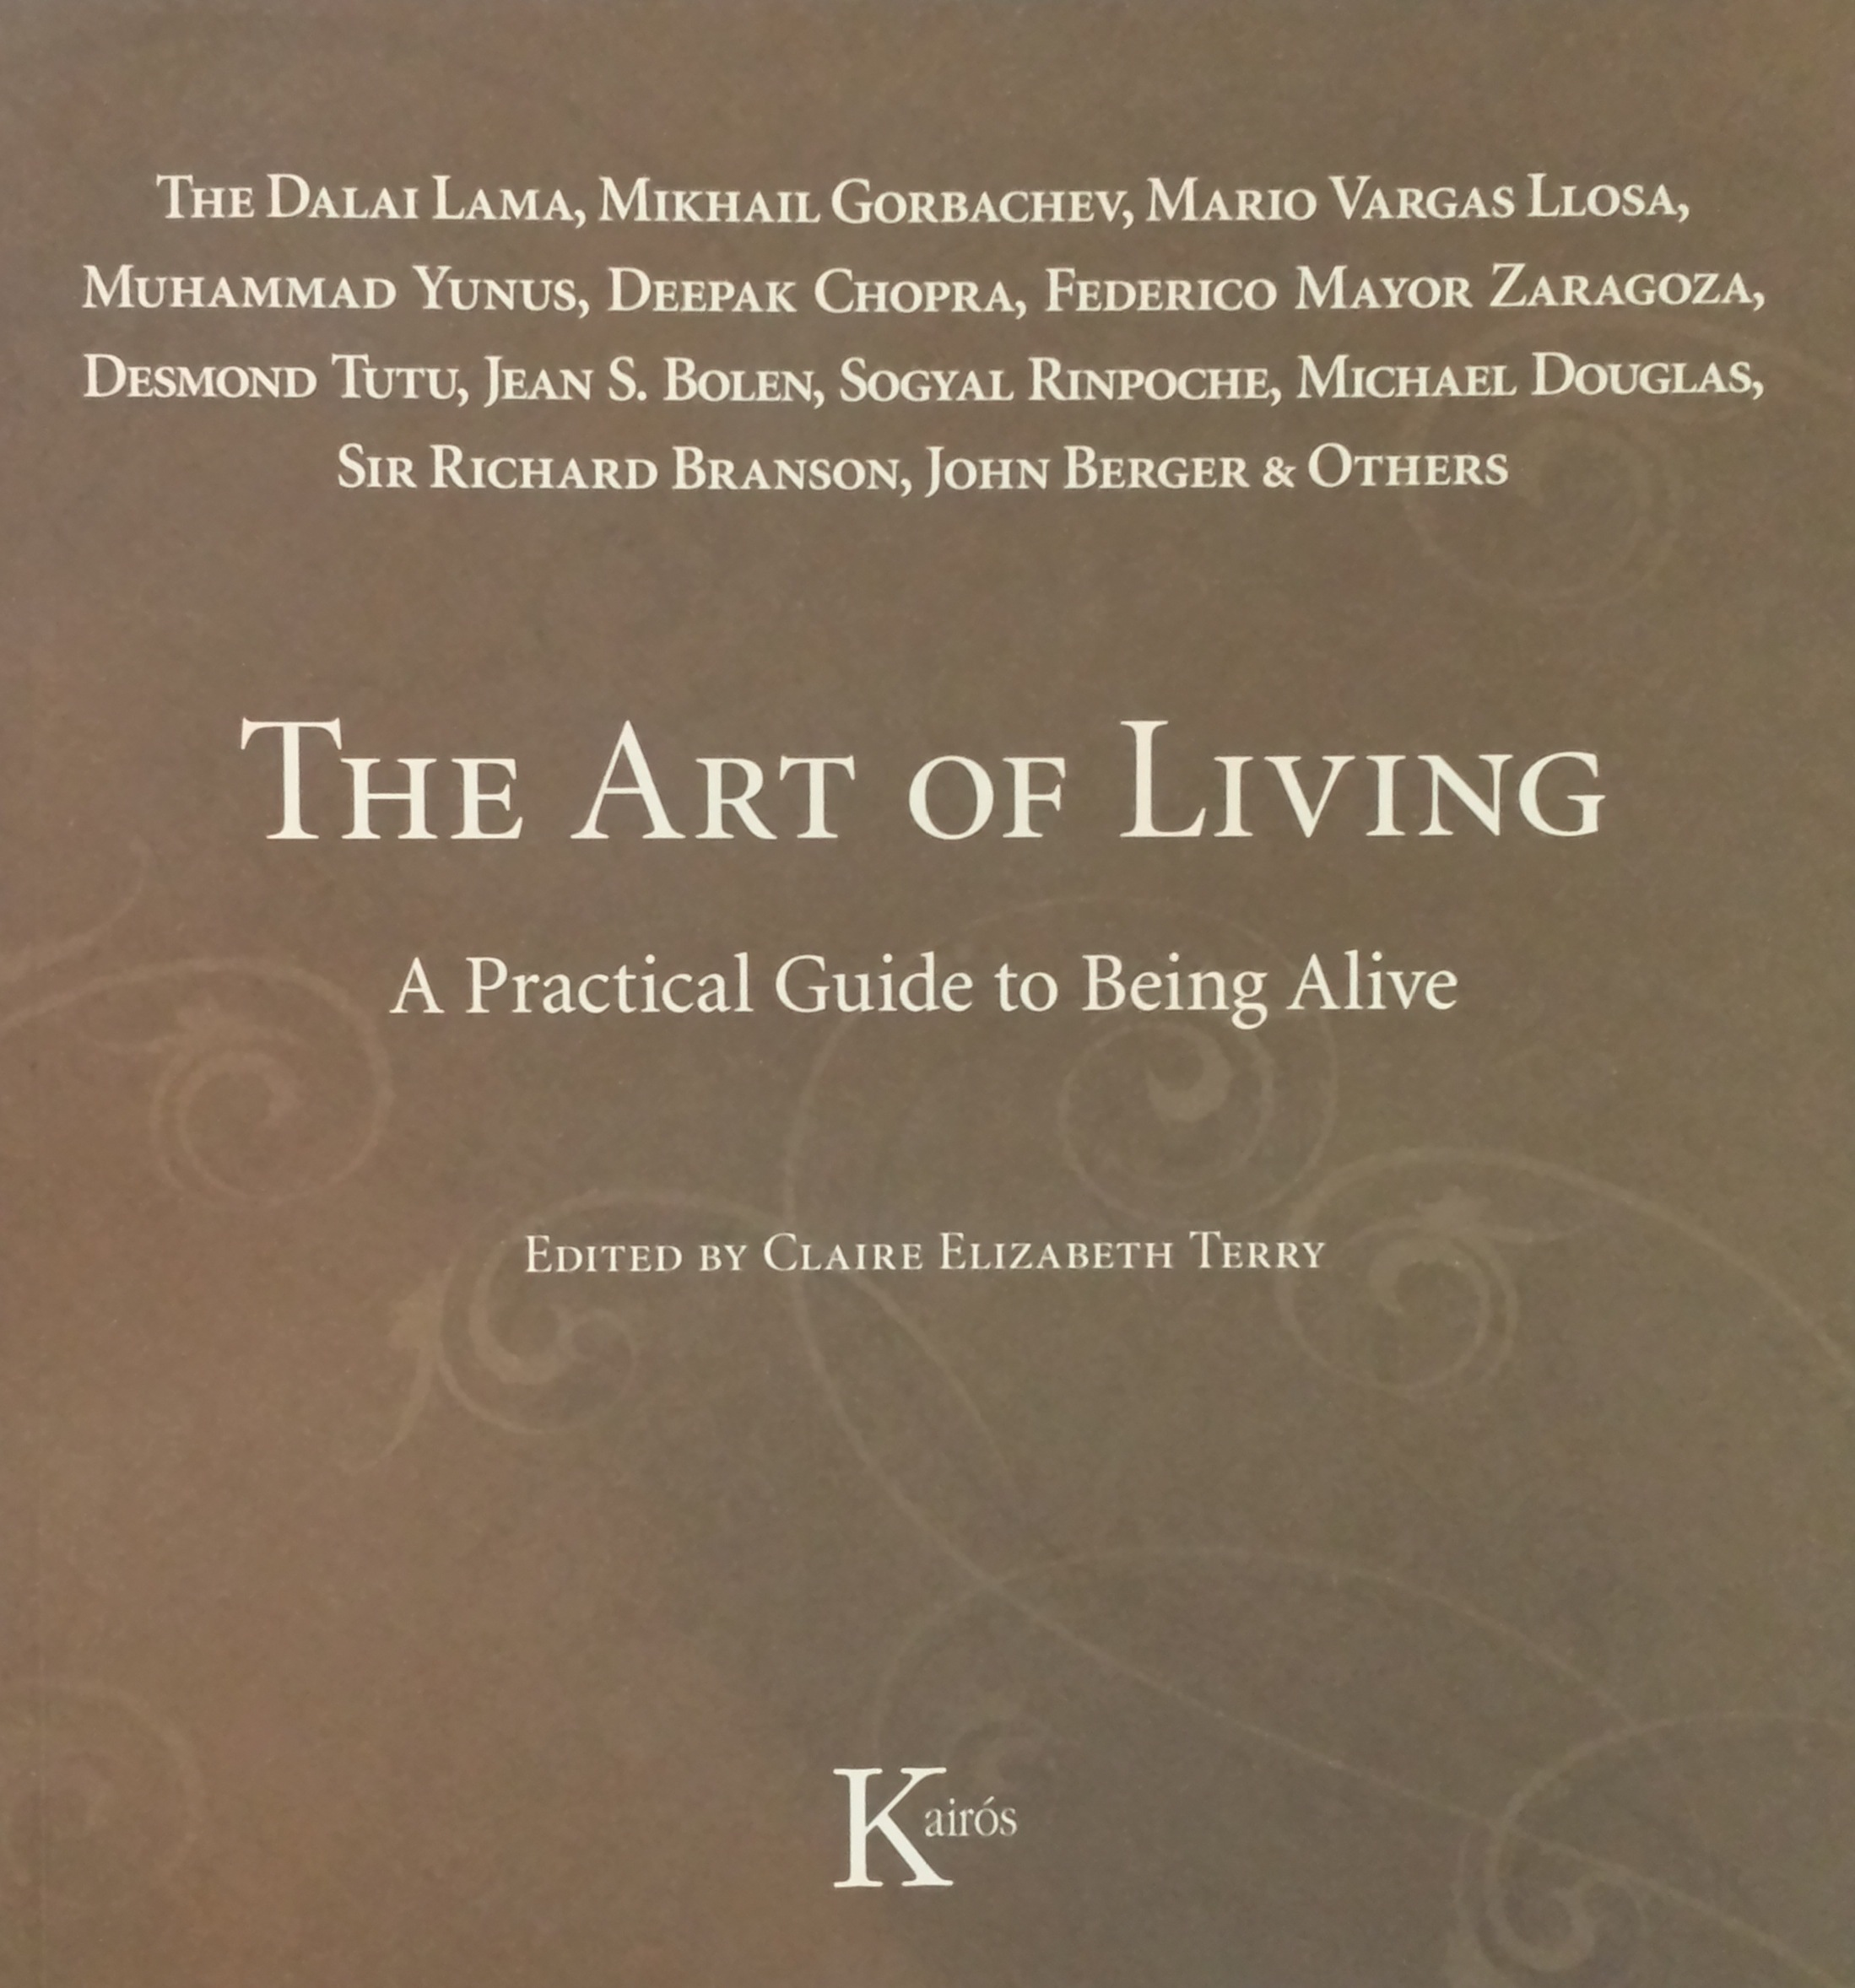 20160527_The Art of Living cover cropped